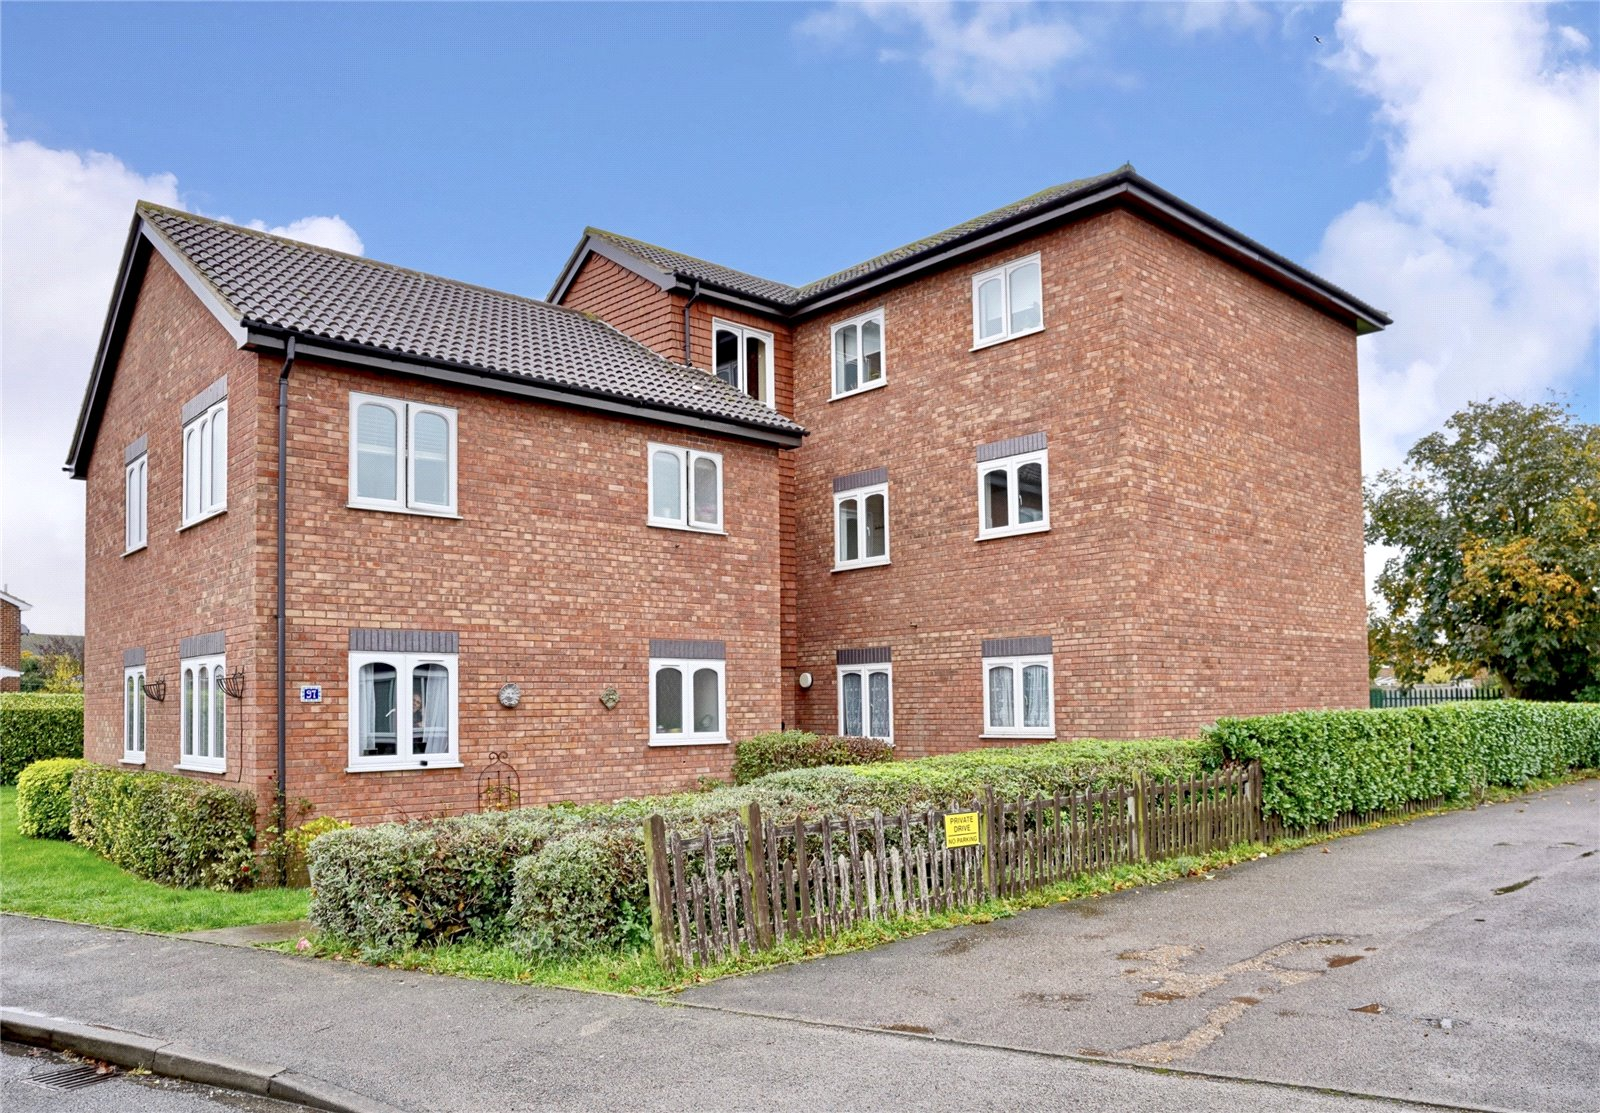 1 bed apartment for sale in Eynesbury, Andrew Road, PE19 2PP, PE19